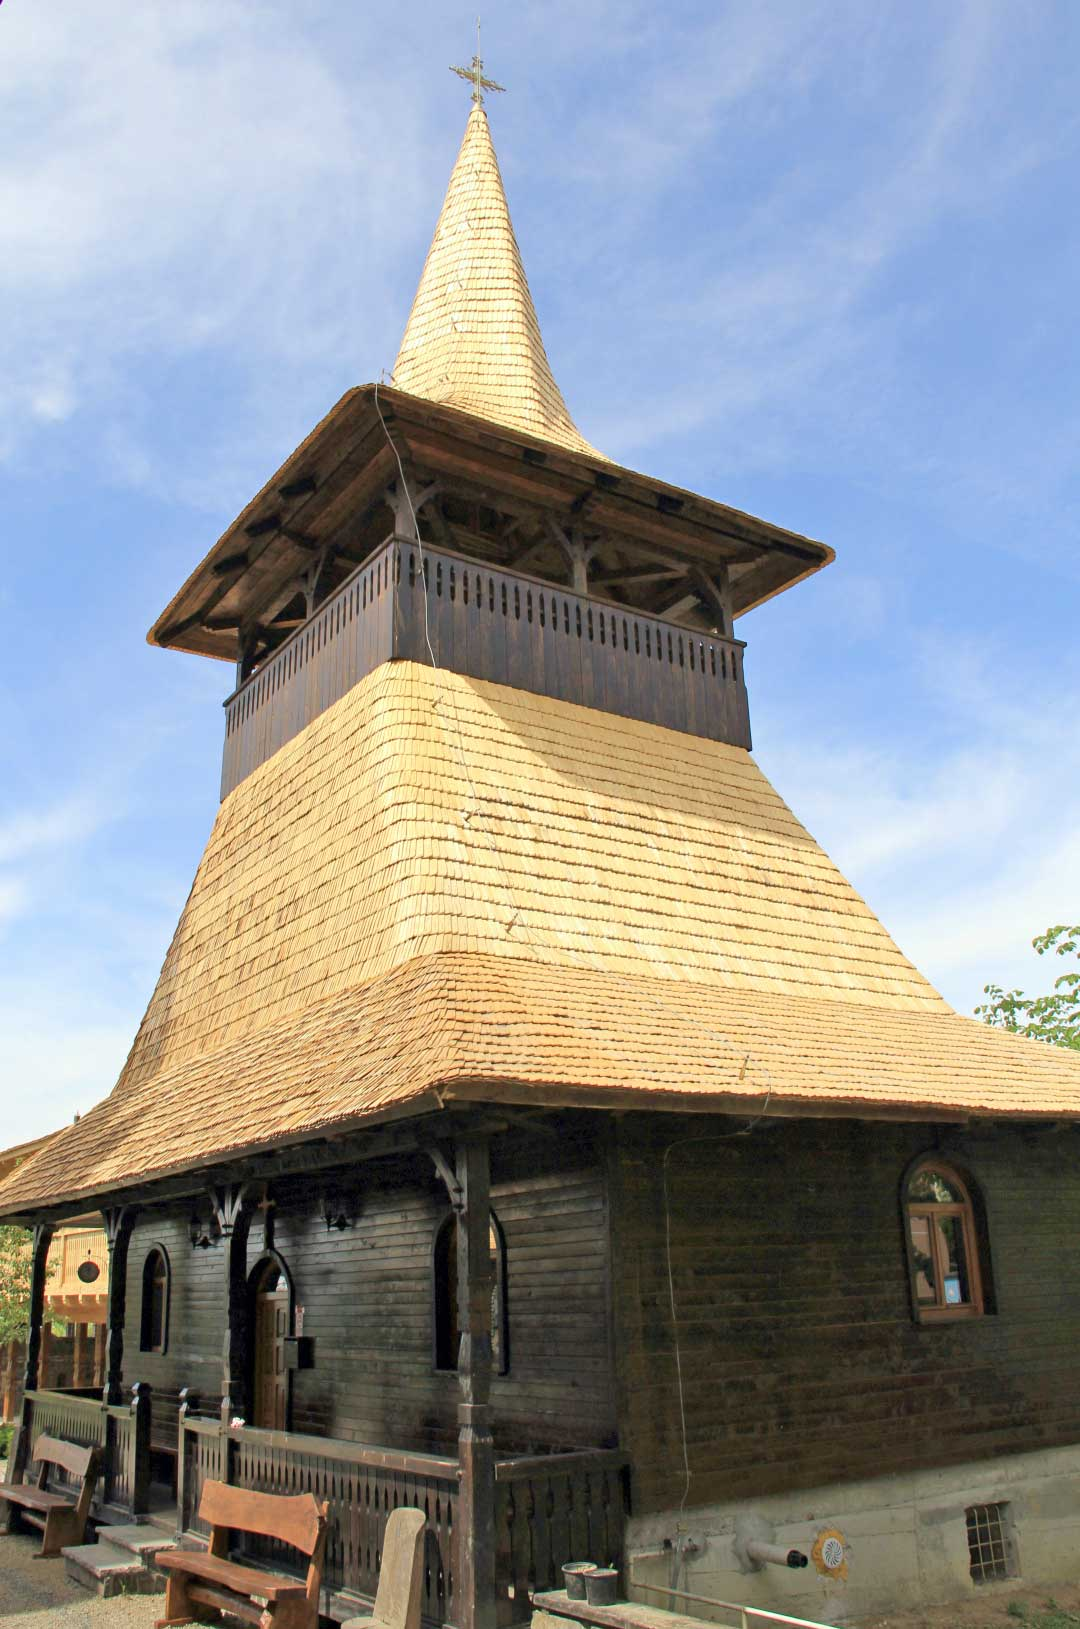 A wooden church in Baia Sprie. Even if new, it respects the old traditional local design. Photo by Ovidiu Balaj